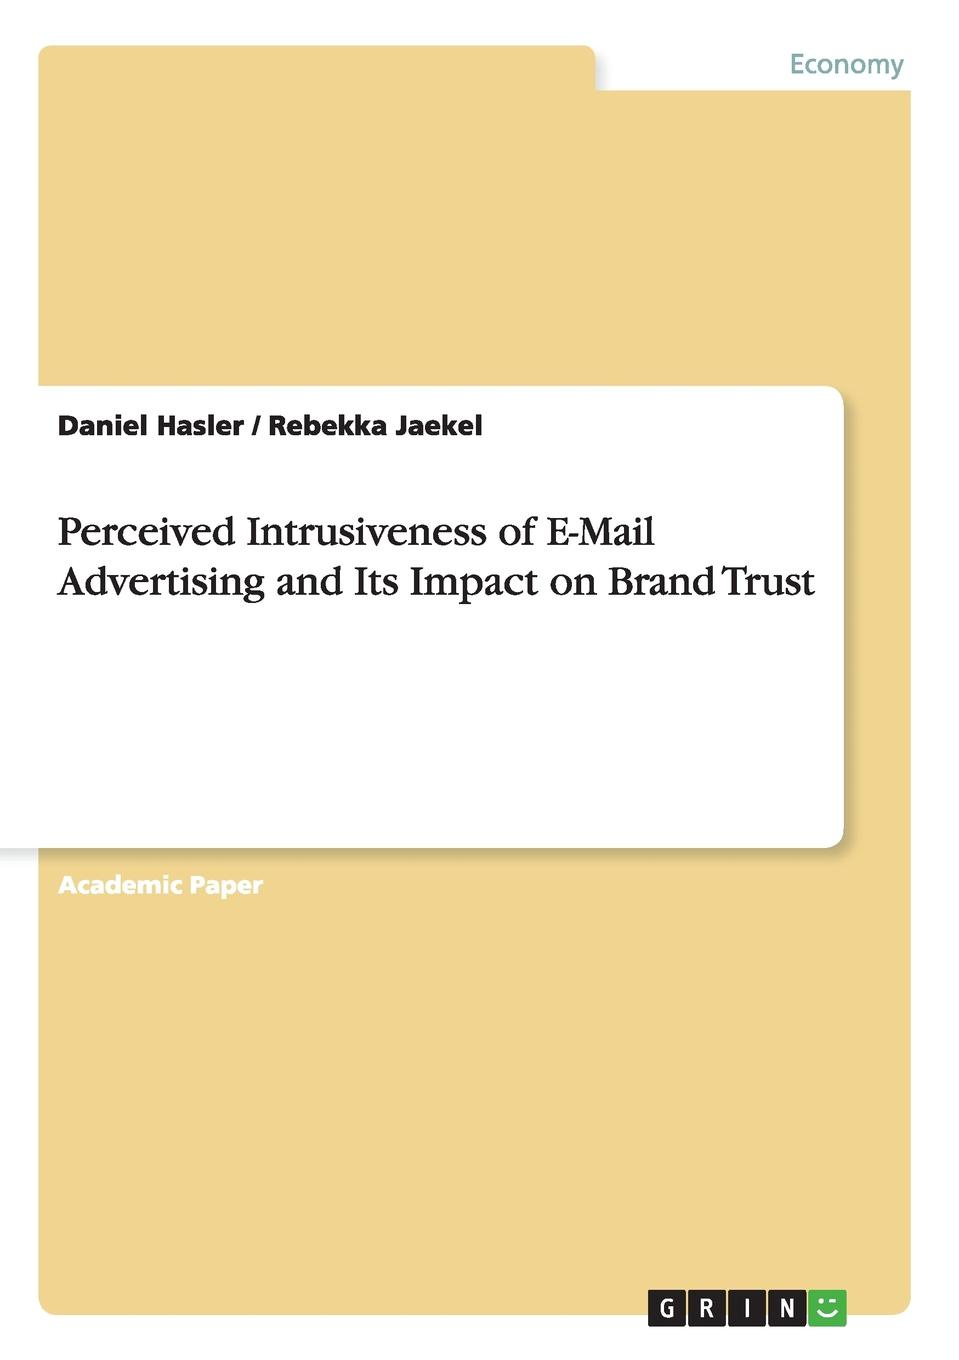 Daniel Hasler, Rebekka Jaekel Perceived Intrusiveness of E-Mail Advertising and Its Impact on Brand Trust sherwyn morreale building the high trust organization strategies for supporting five key dimensions of trust